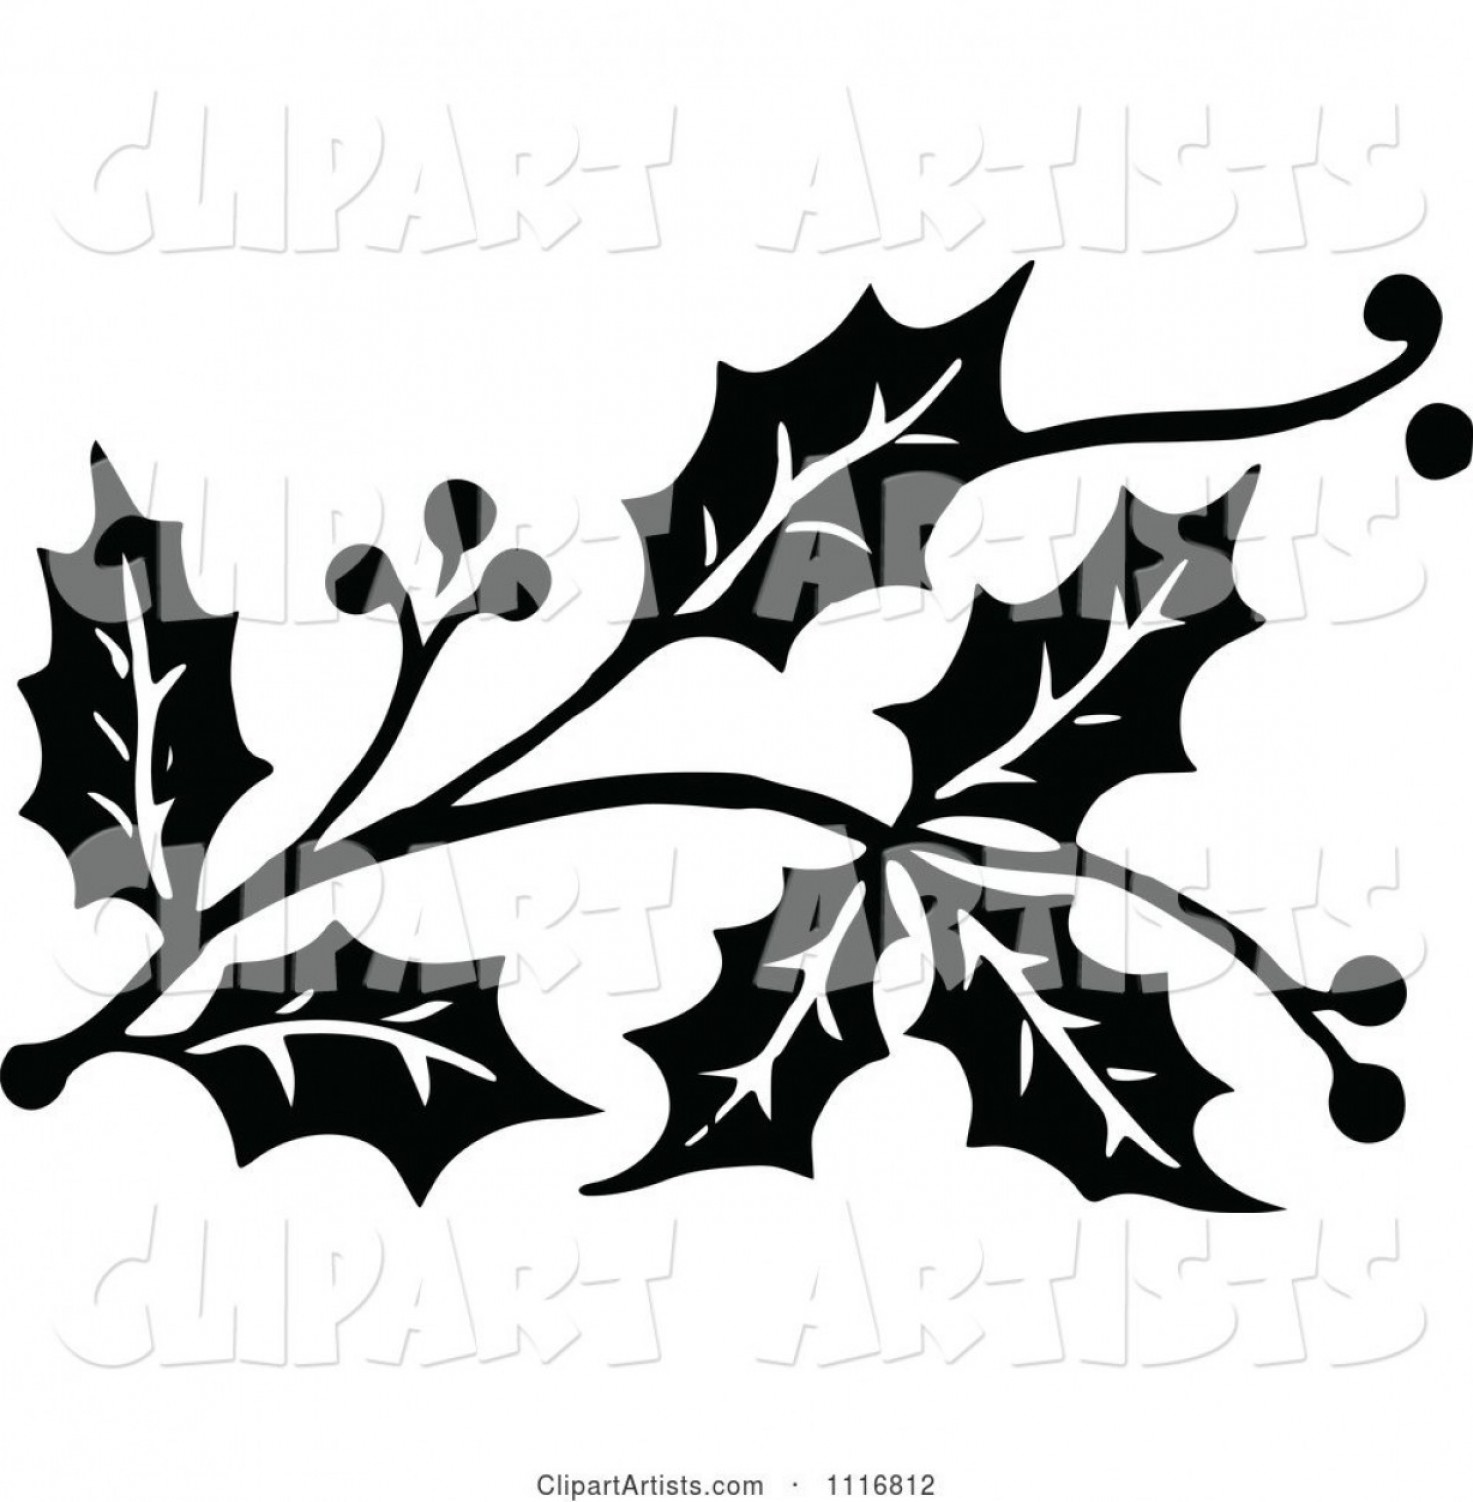 Vector Clipart Vintage Black And White Christmas Holly Sprig Design.